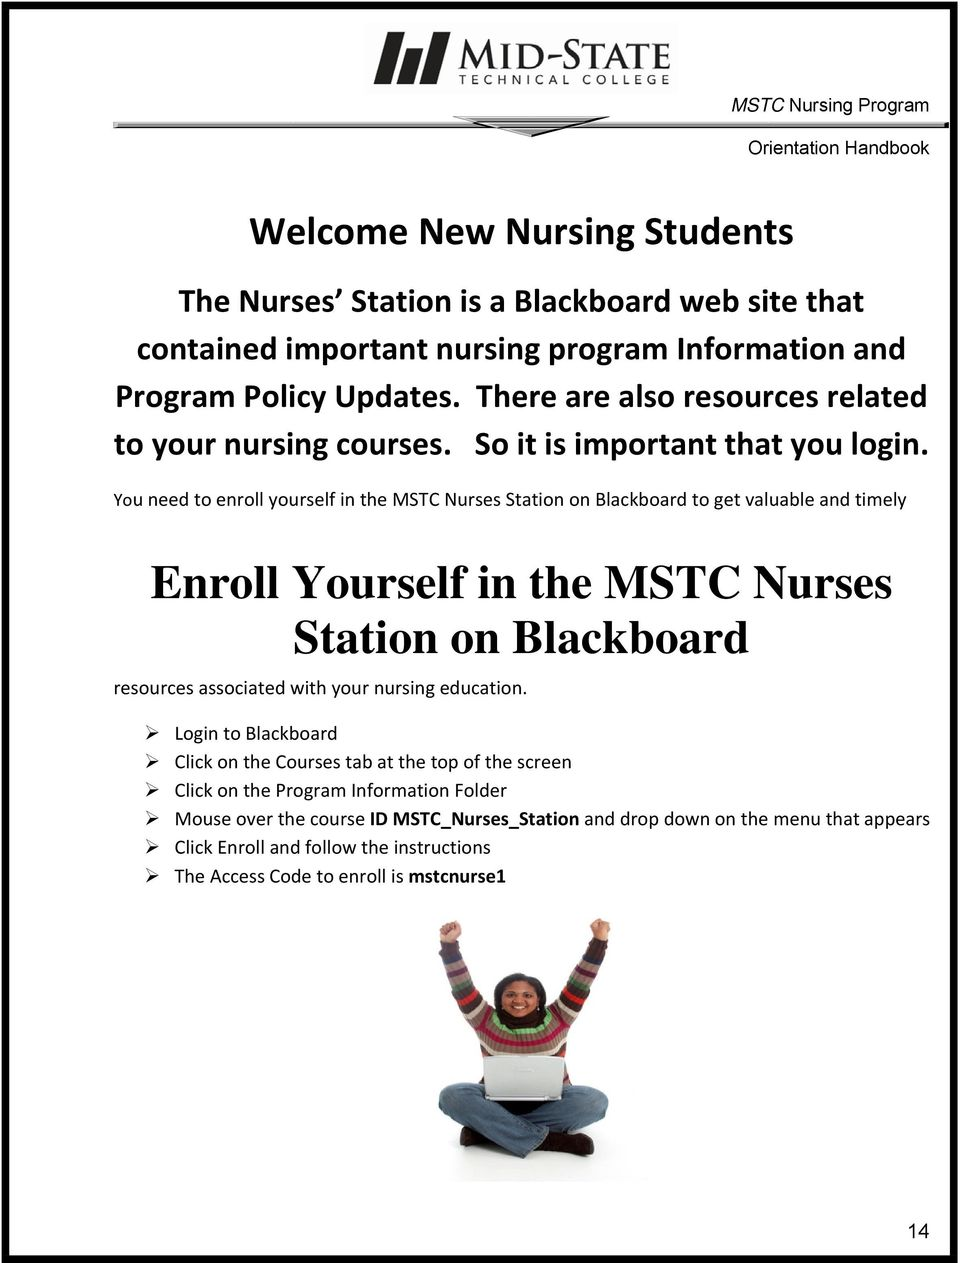 You need to enroll yourself in the MSTC Nurses Station on Blackboard to get valuable and timely Enroll Yourself in the MSTC Nurses Station on Blackboard resources associated with